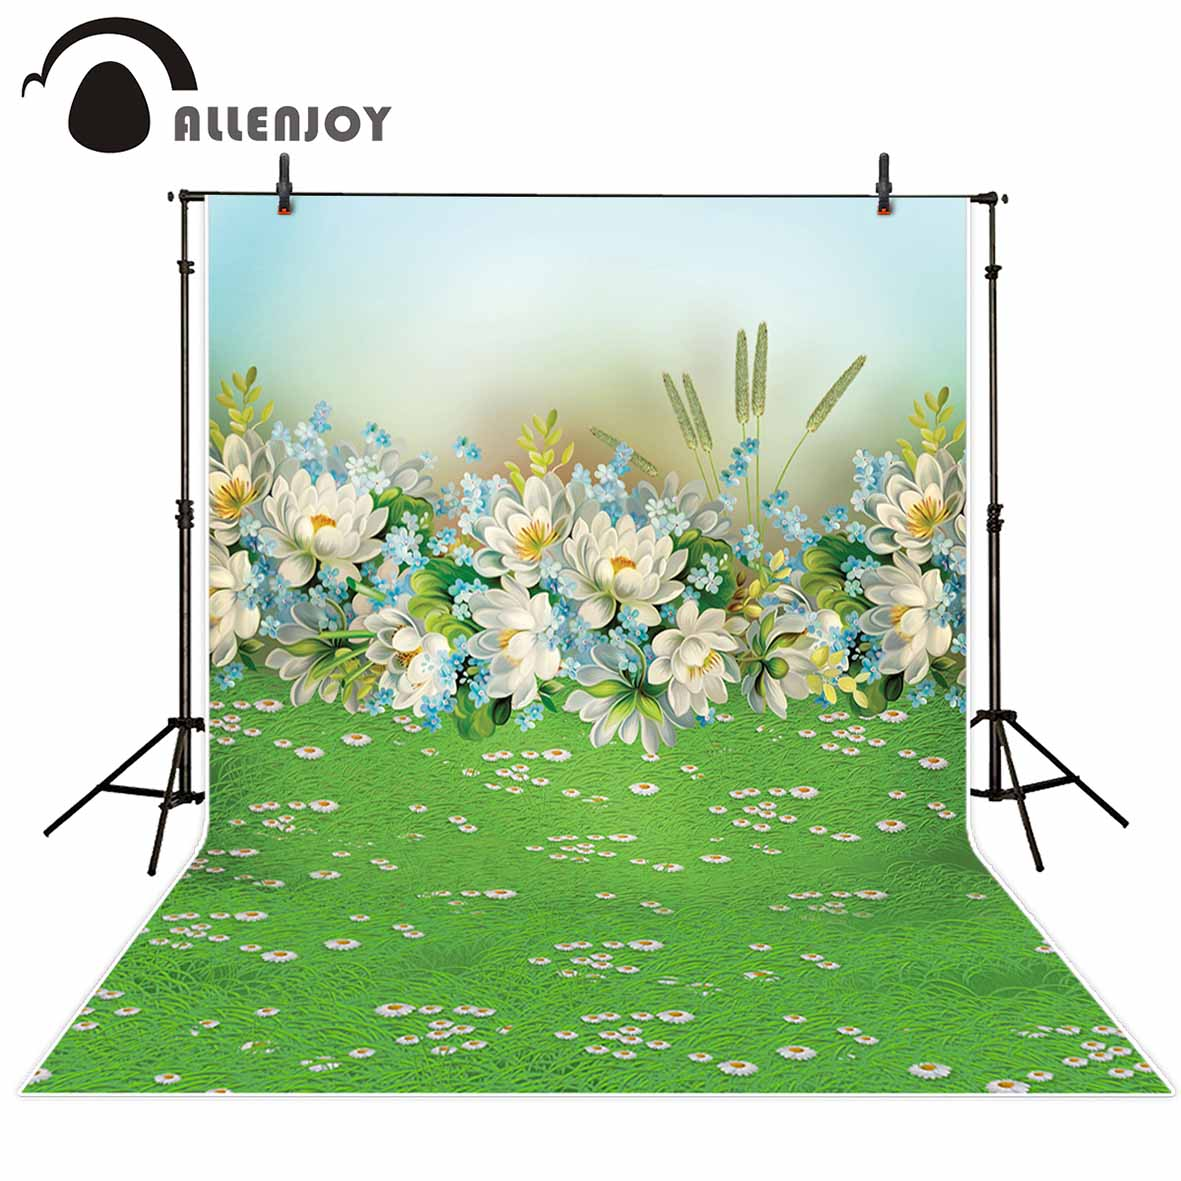 Allenjoy photographic background Grass white flowers cartoon scenery backdrop photocall Children's photography studio HD files